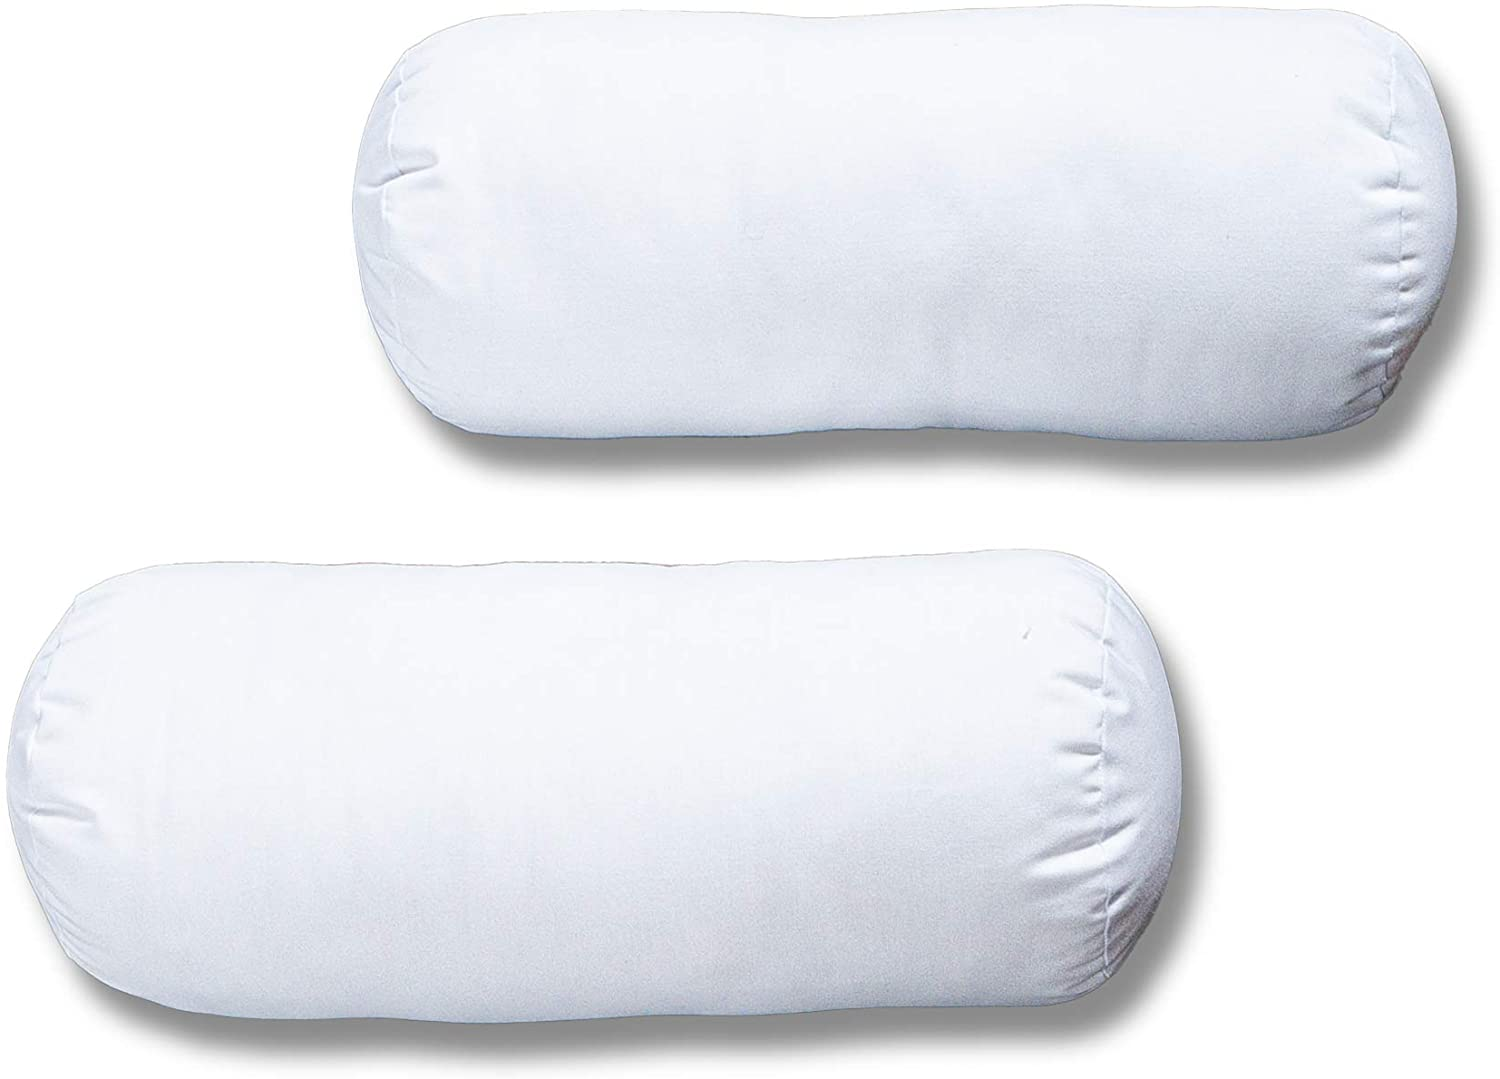 Alex Orthopedic Inc (Pack of 2 Medium Soft Cervical Pillow | Made in USA